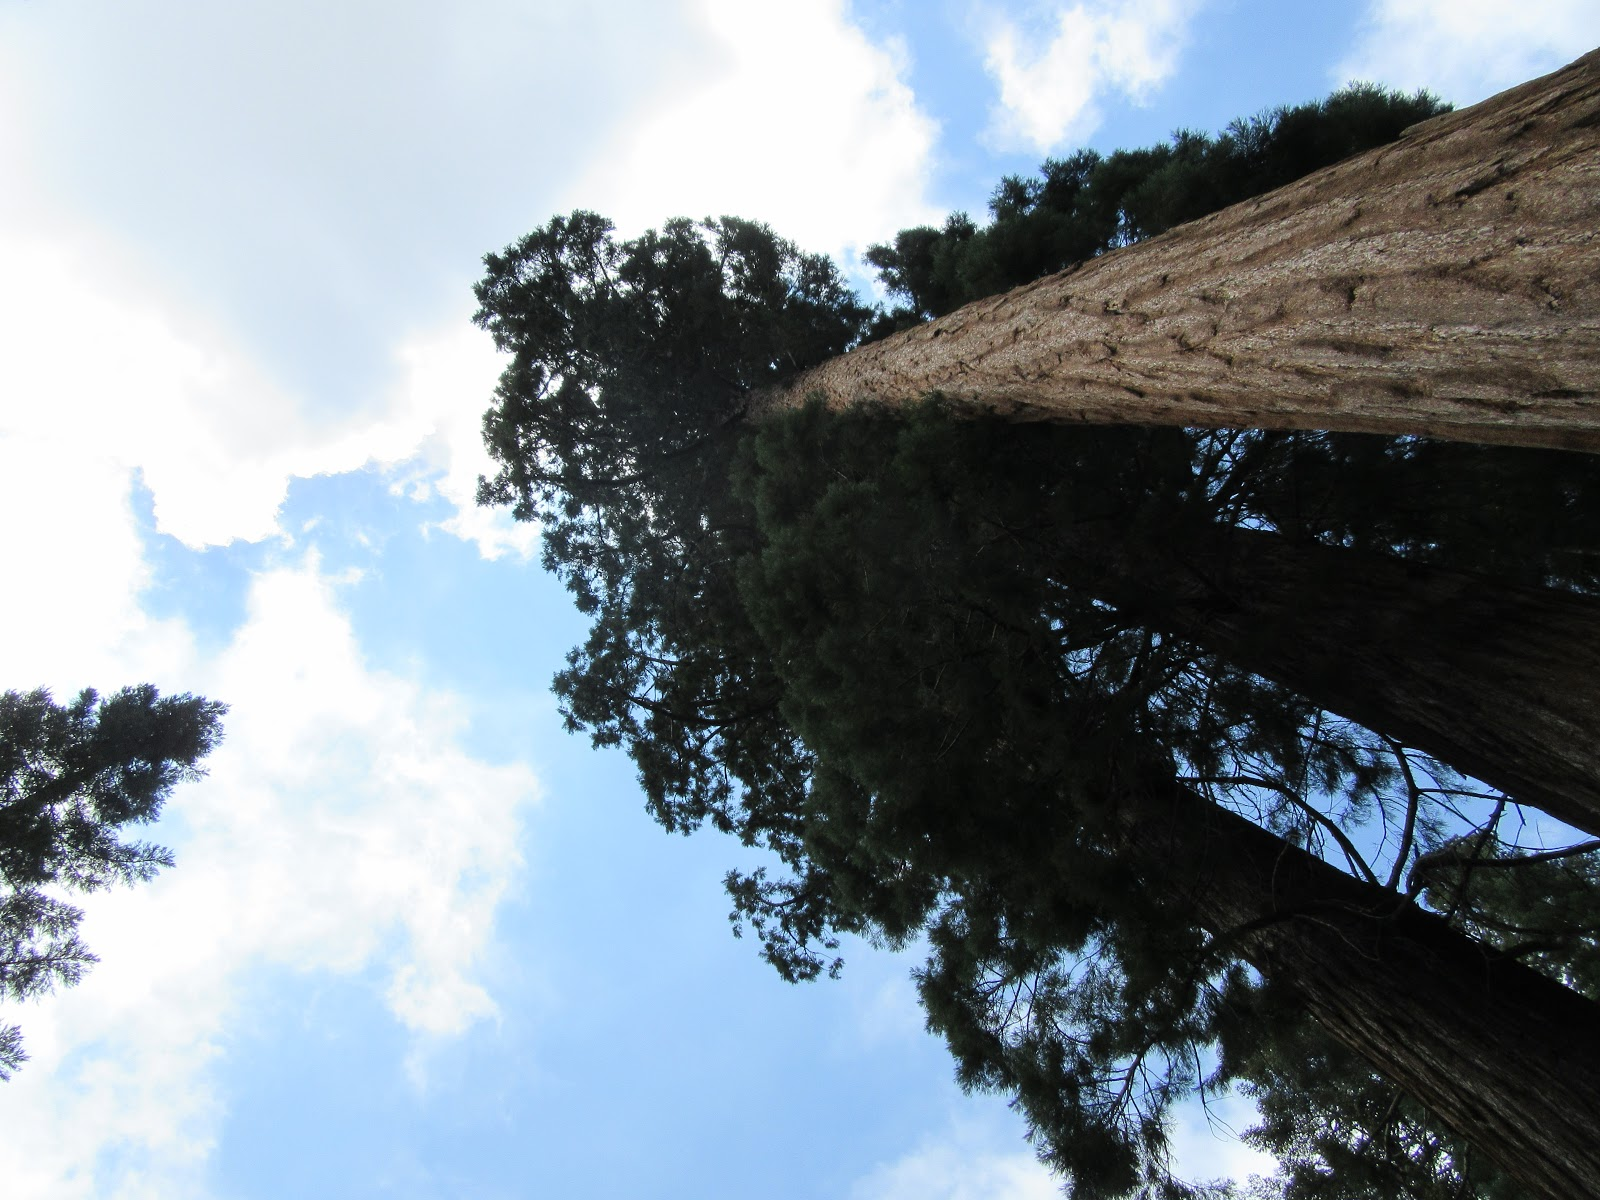 Cycling  Bear Creek Road on road bike - vertical photo of giant sequoia redwood